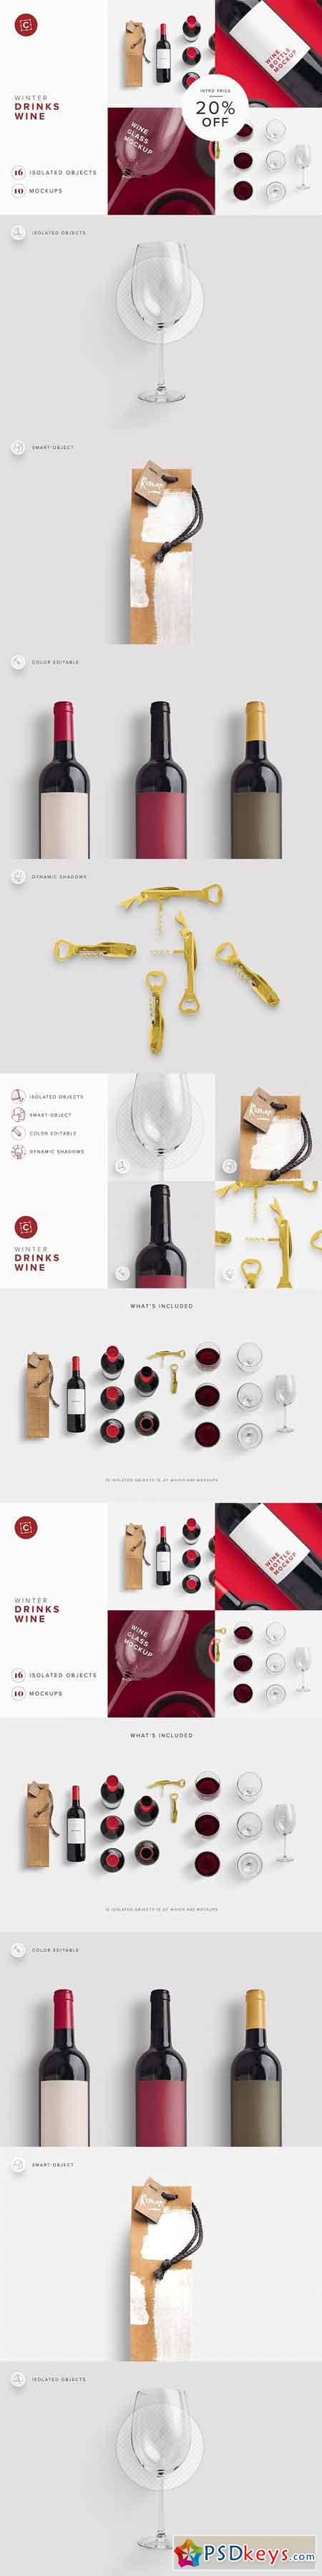 Wine Bottle Glass Bag PSD Mockup 3214180